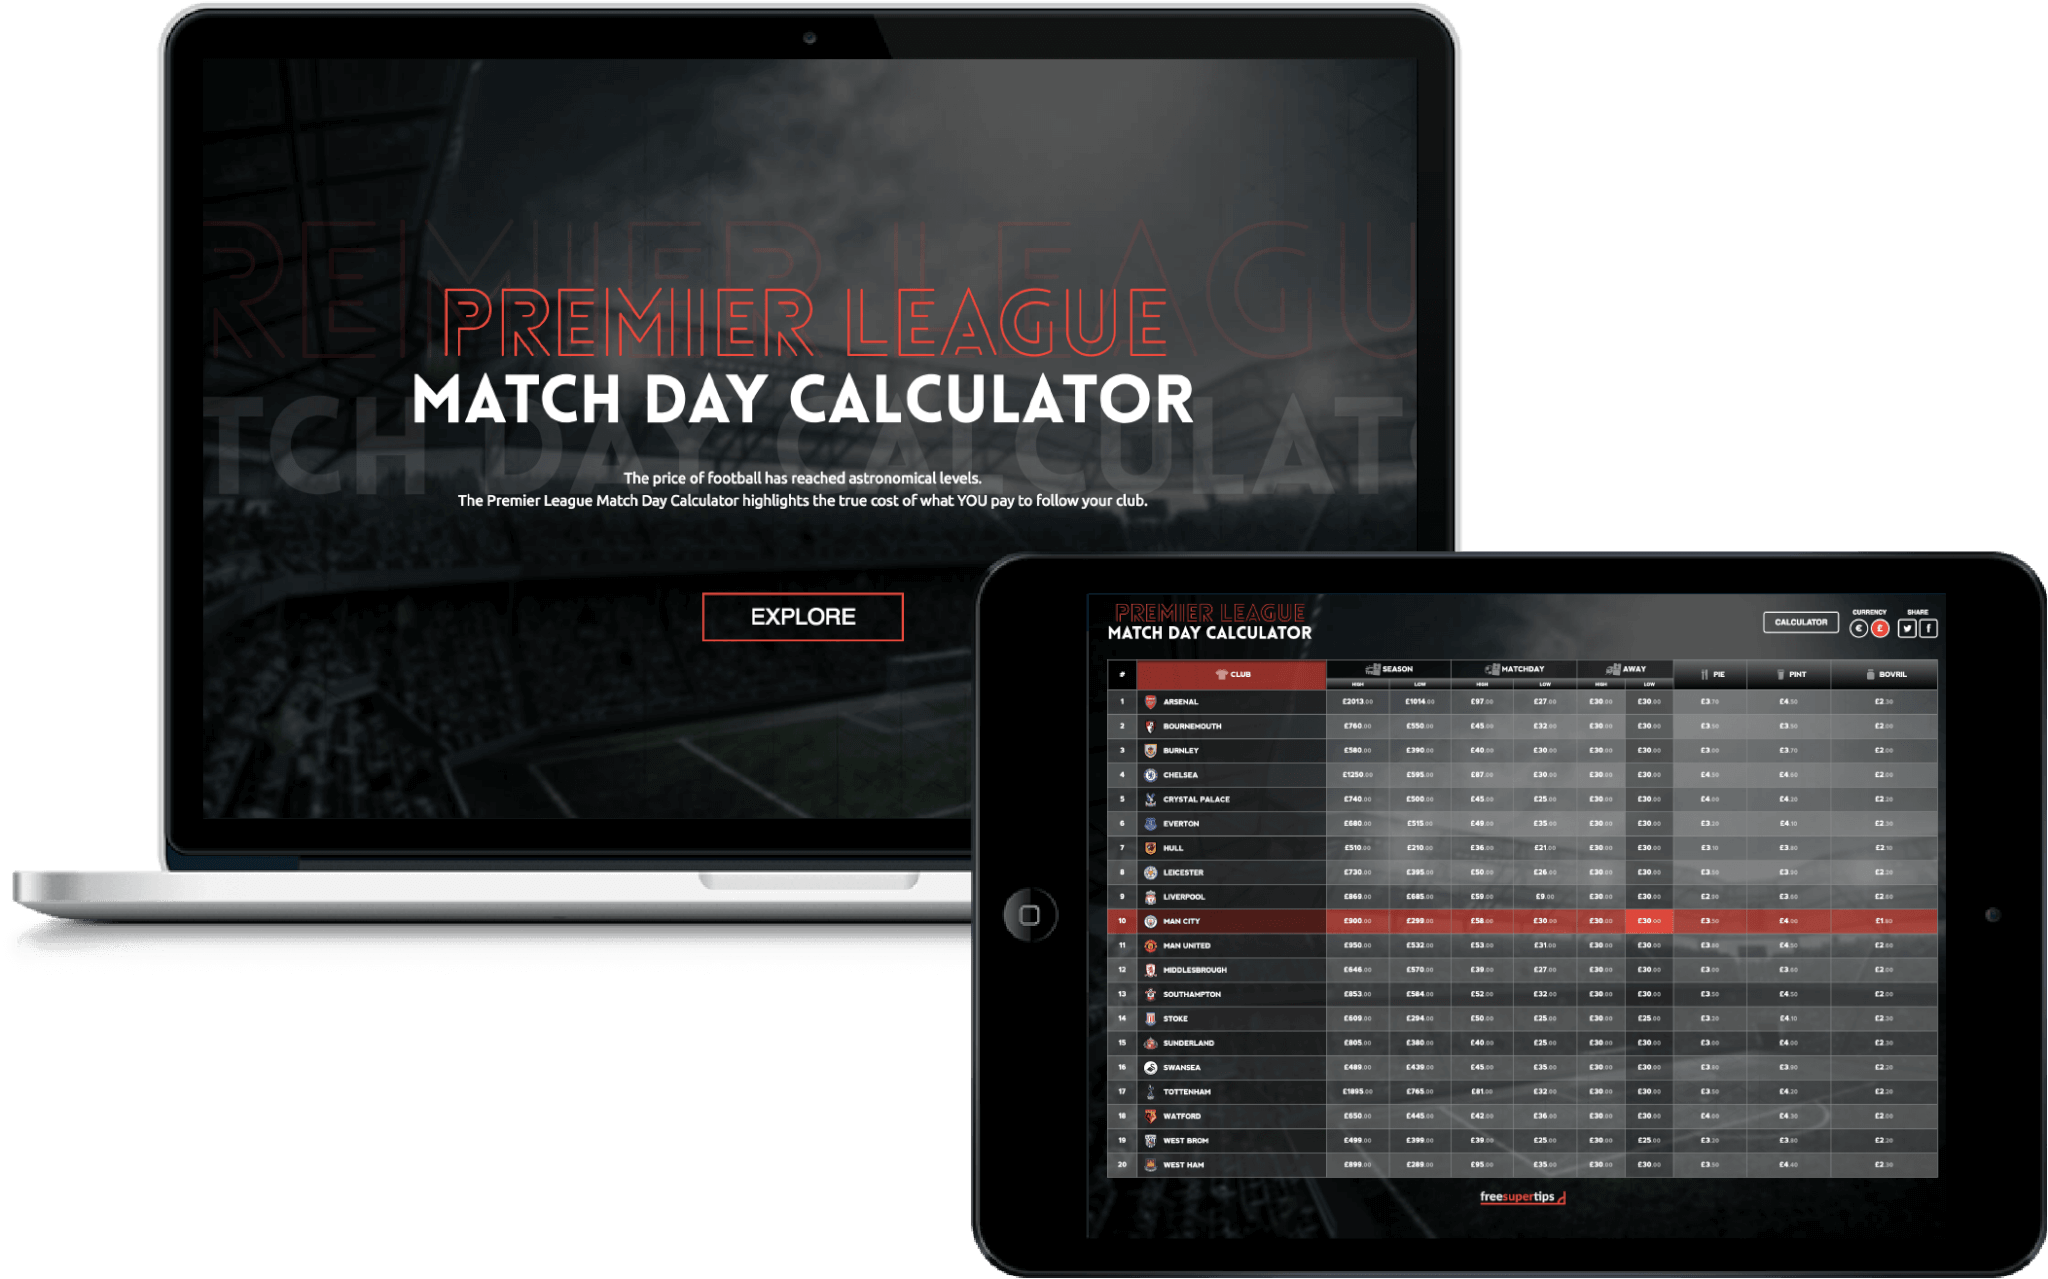 https://d2aqhkfmxz8mgx.cloudfront.net/uploads/2018/02/Free-Super-Tips-Match-Day-Calculator-01.png